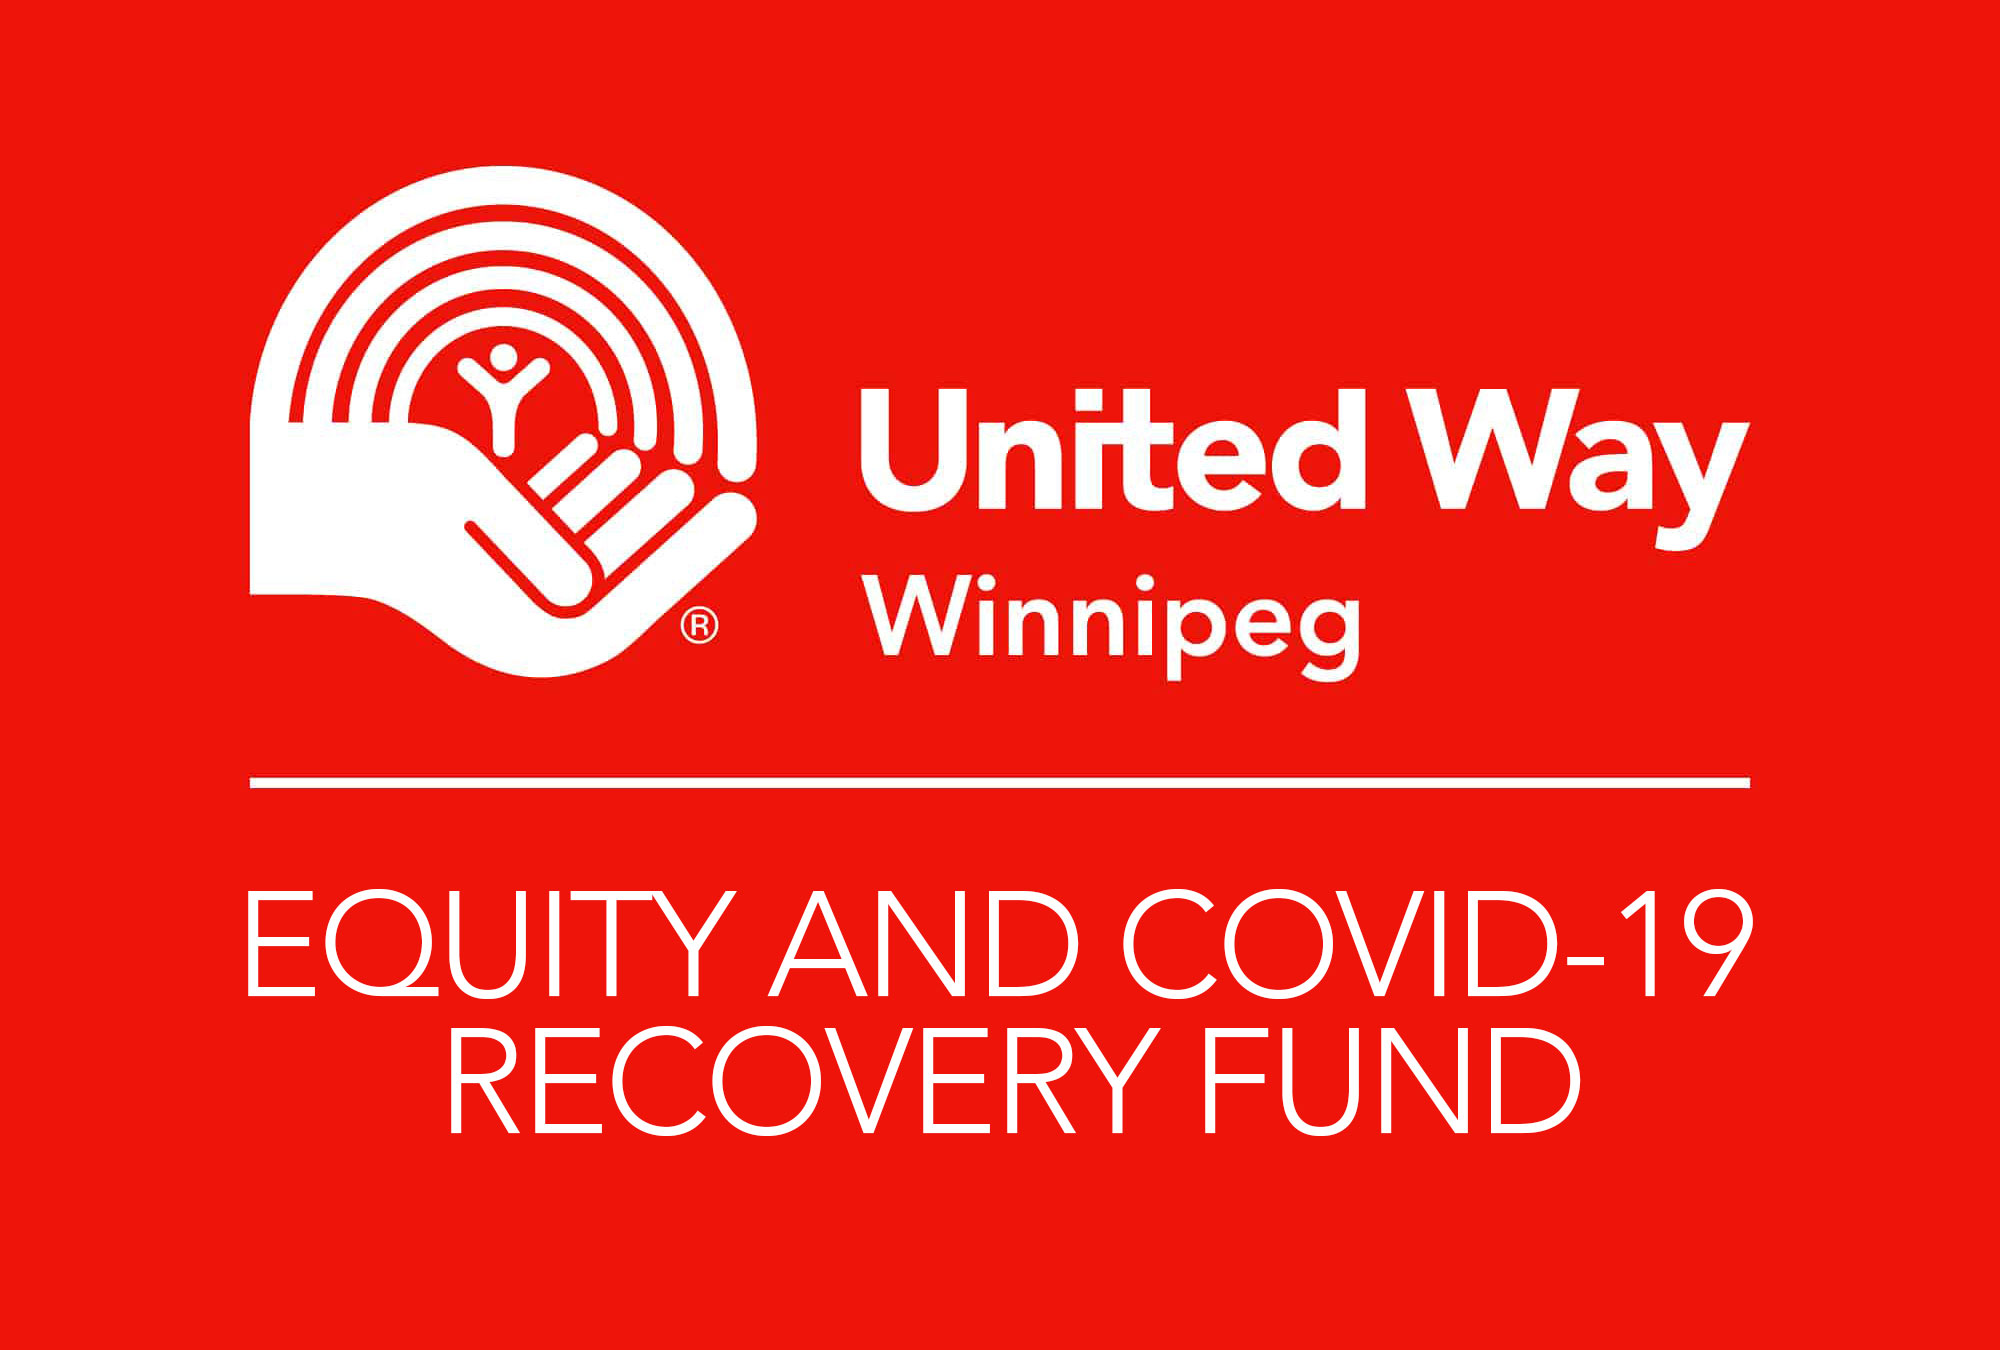 Equity and COVID-19 Recovery Fund graphic